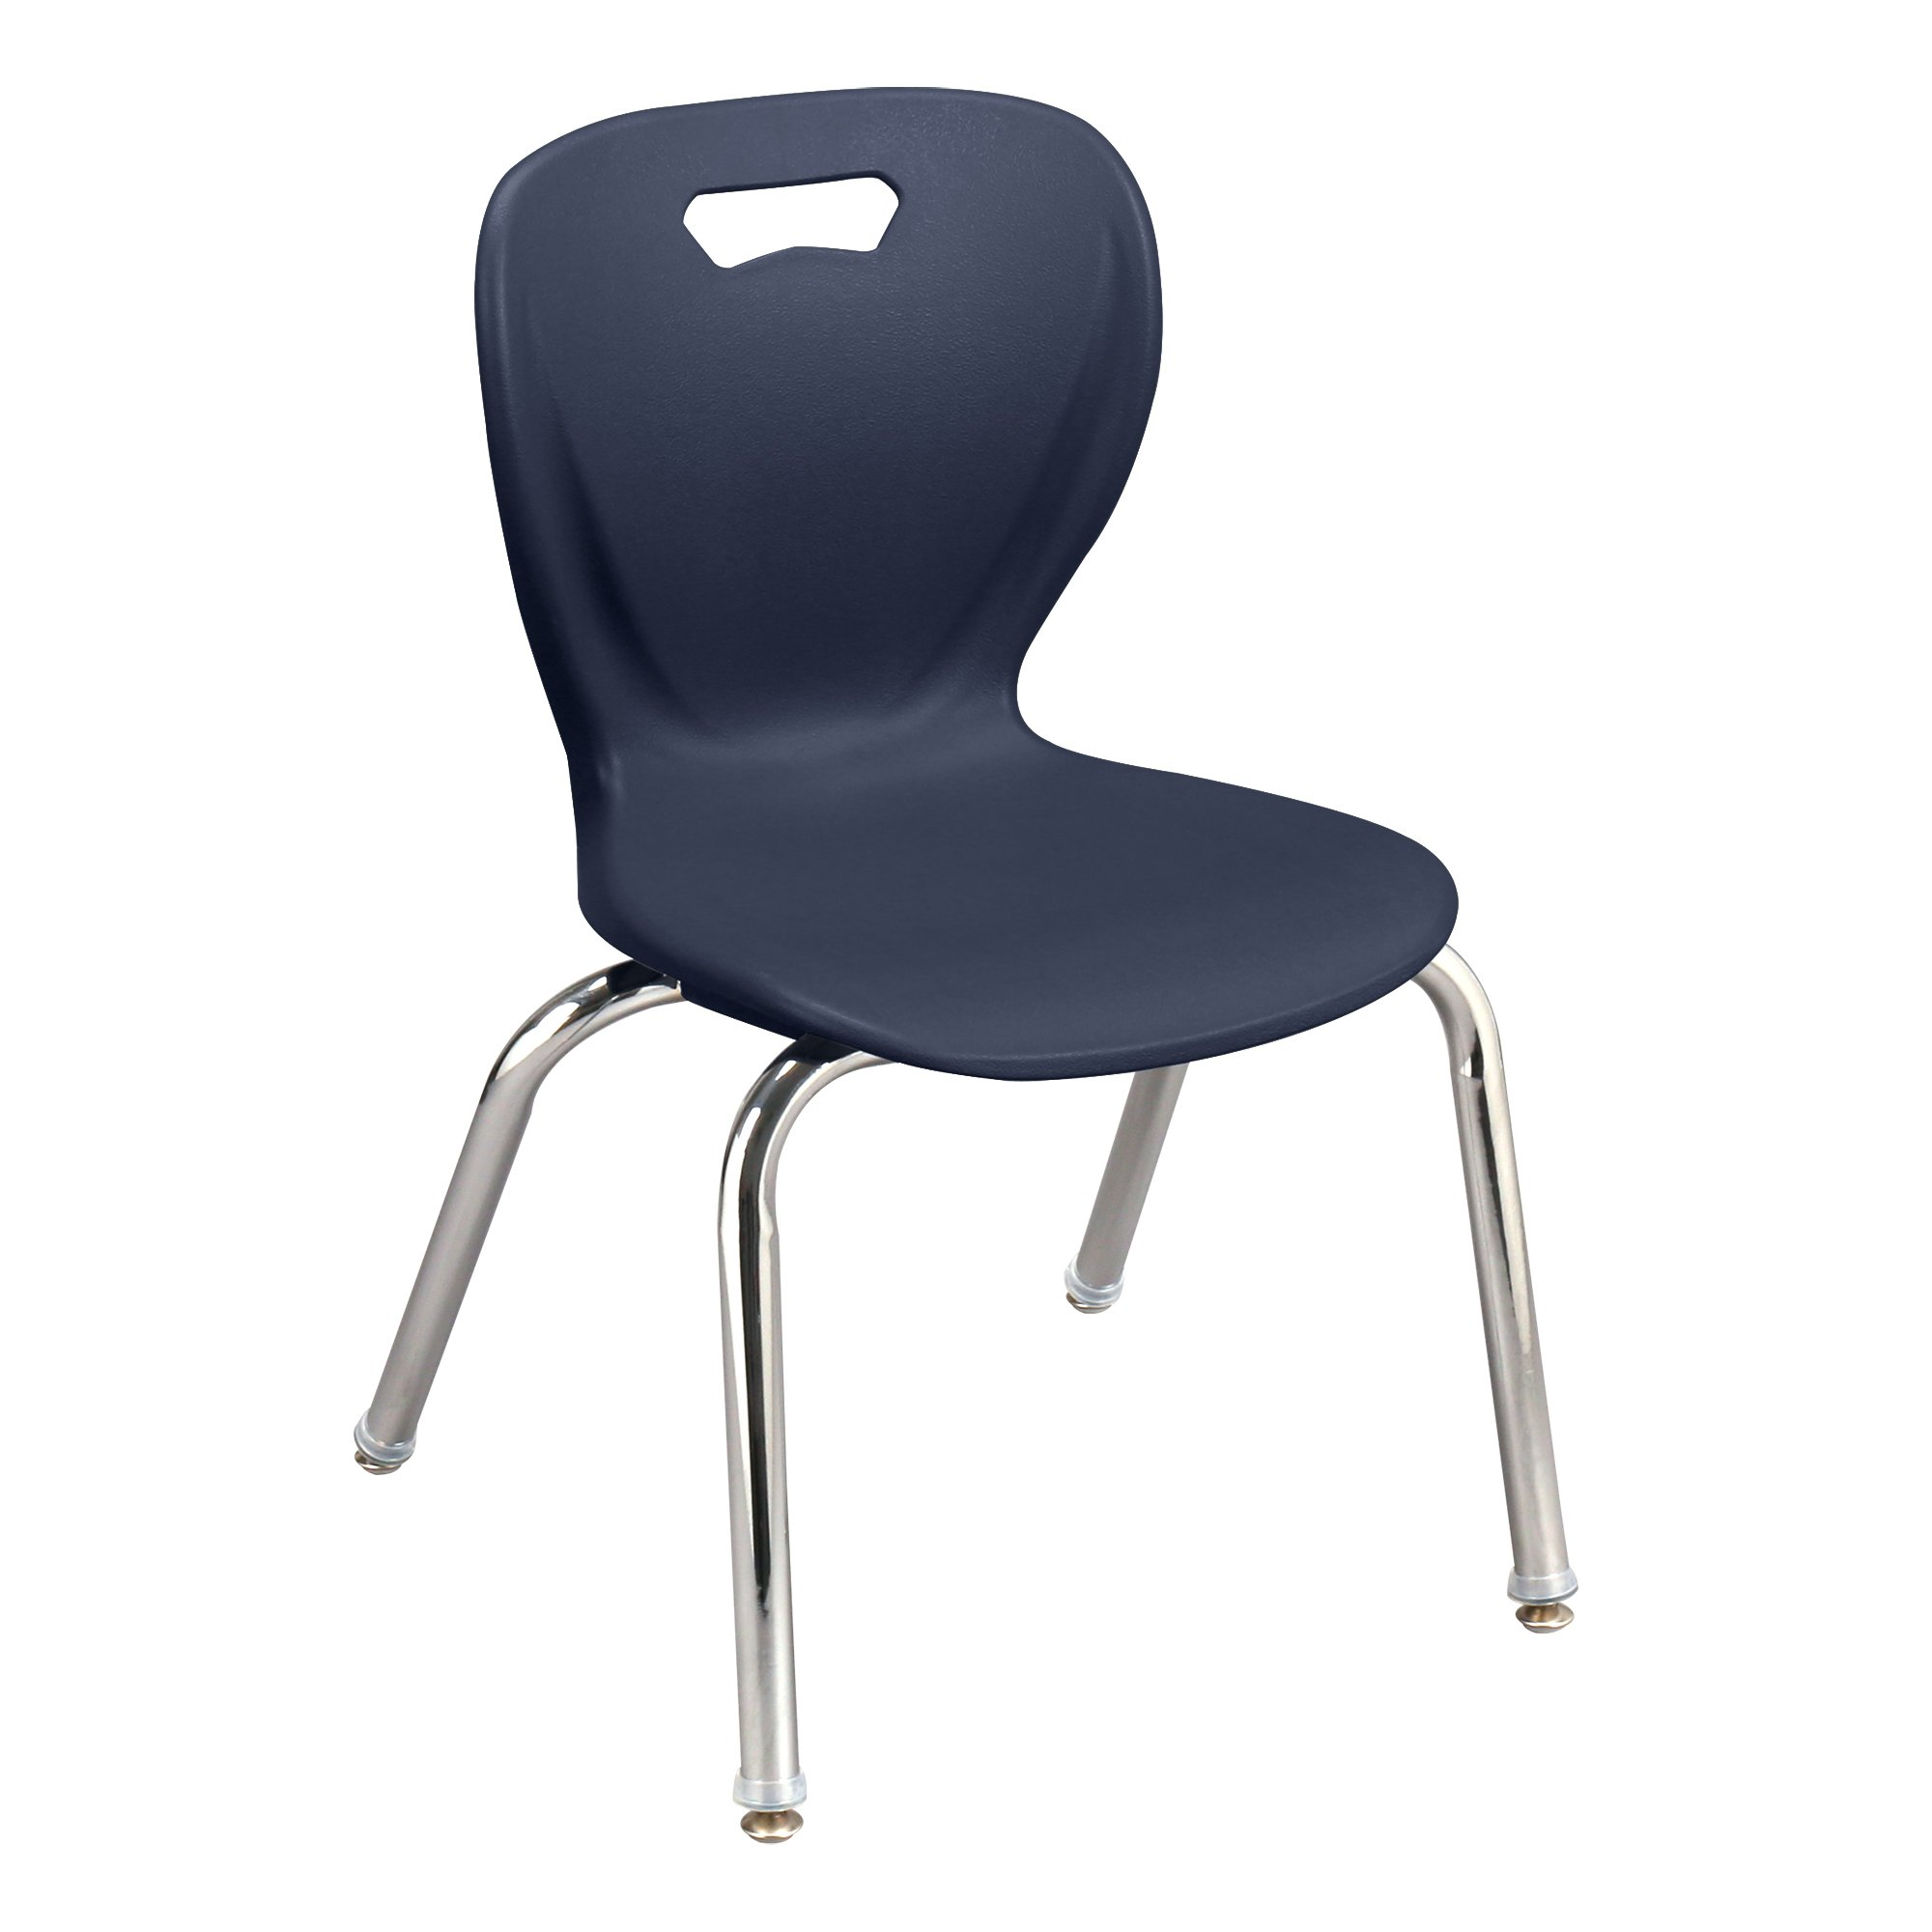 Learniture Shape Series School Chair,16'' Seat Height, Navy (Pack of 4) LNT-INM3016NV-SO by School Outfitters (Image #1)